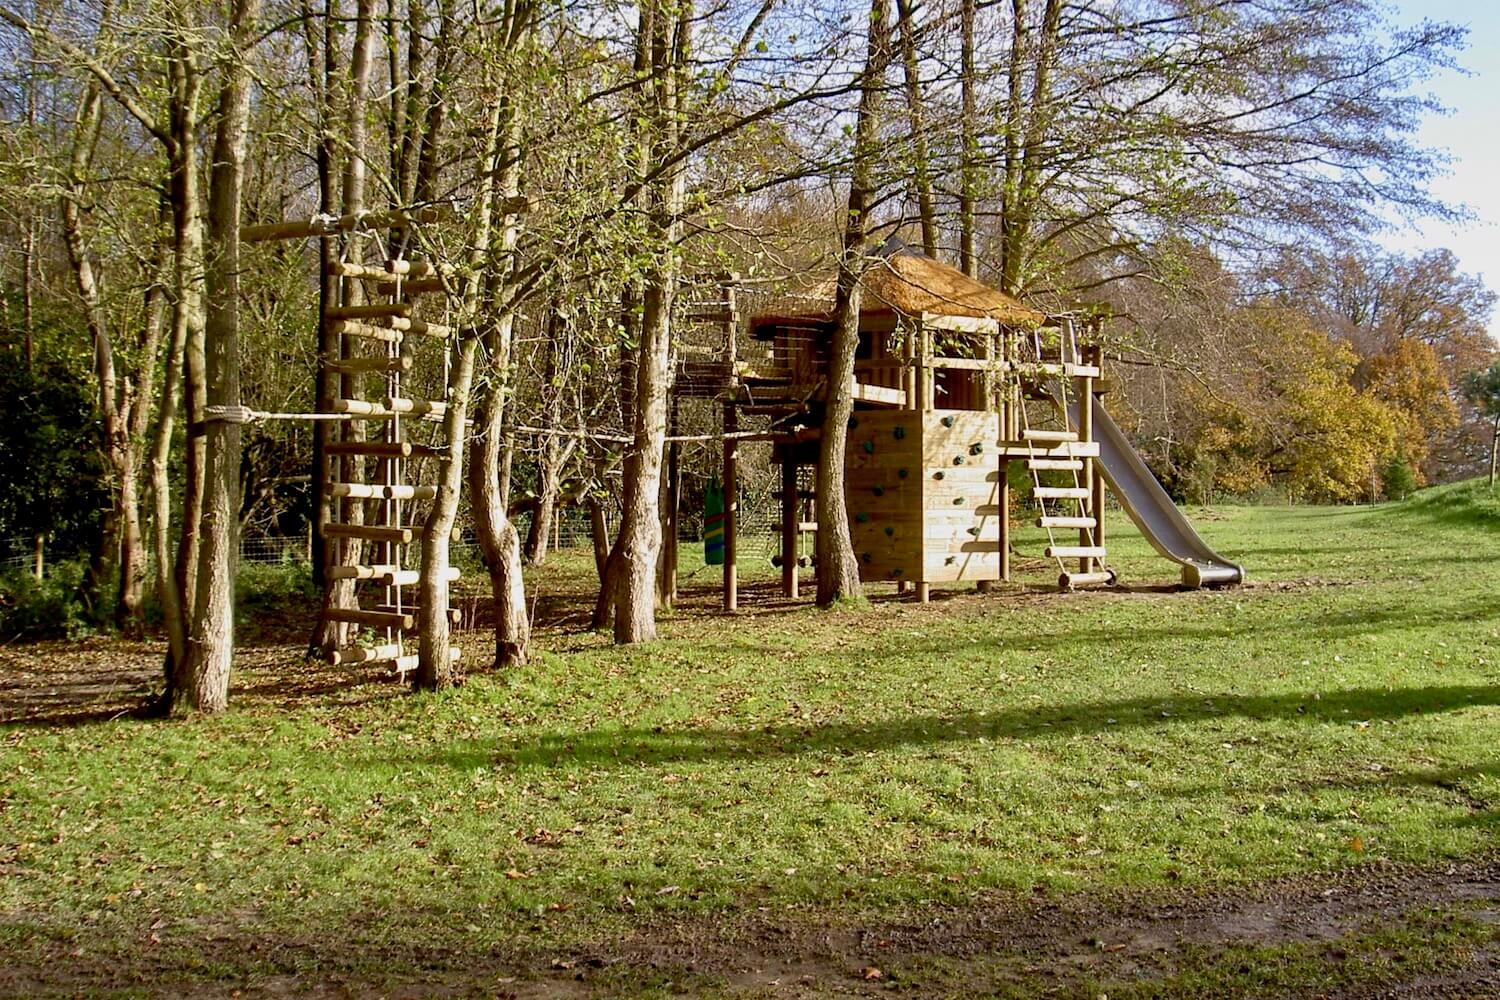 'School' tree house